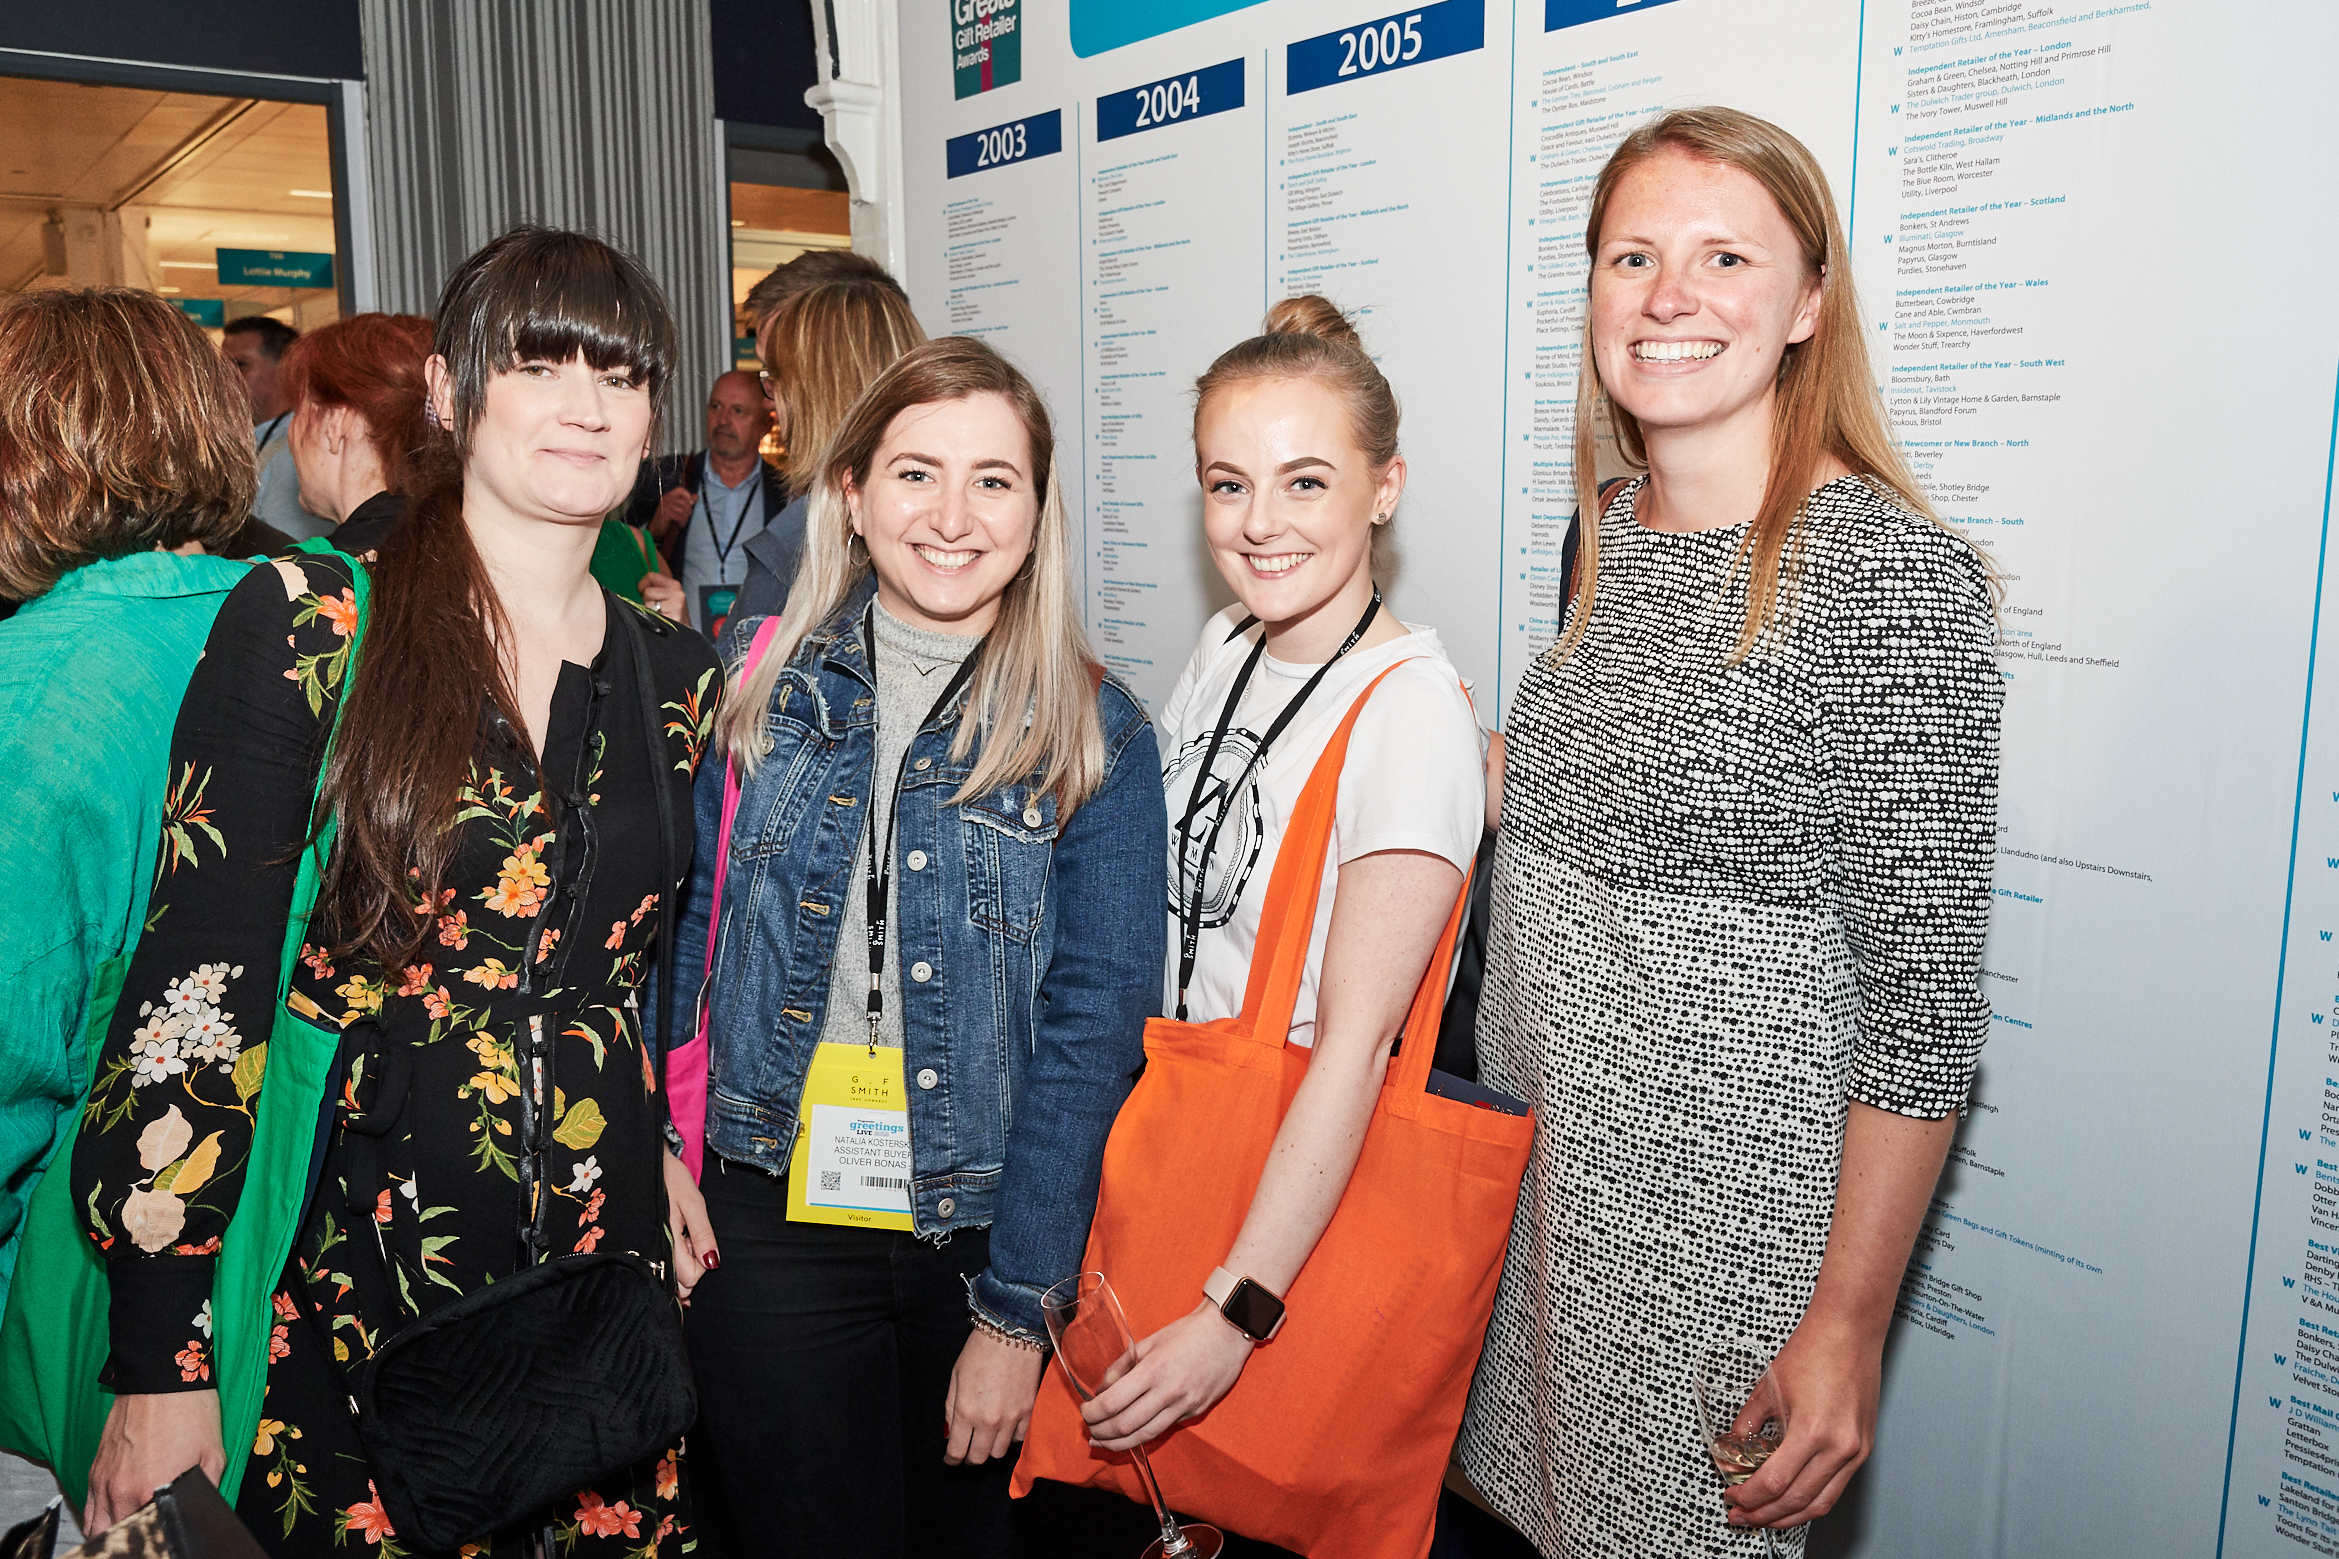 Above: Fenwick's Abigail Ball (second right) with colleague Lizzie Tillmanns (far right) and Oliver Bonas' Natalia Kosterska (second left) and Siobhain Watkins at The Retas' Drinks Reception at the show.